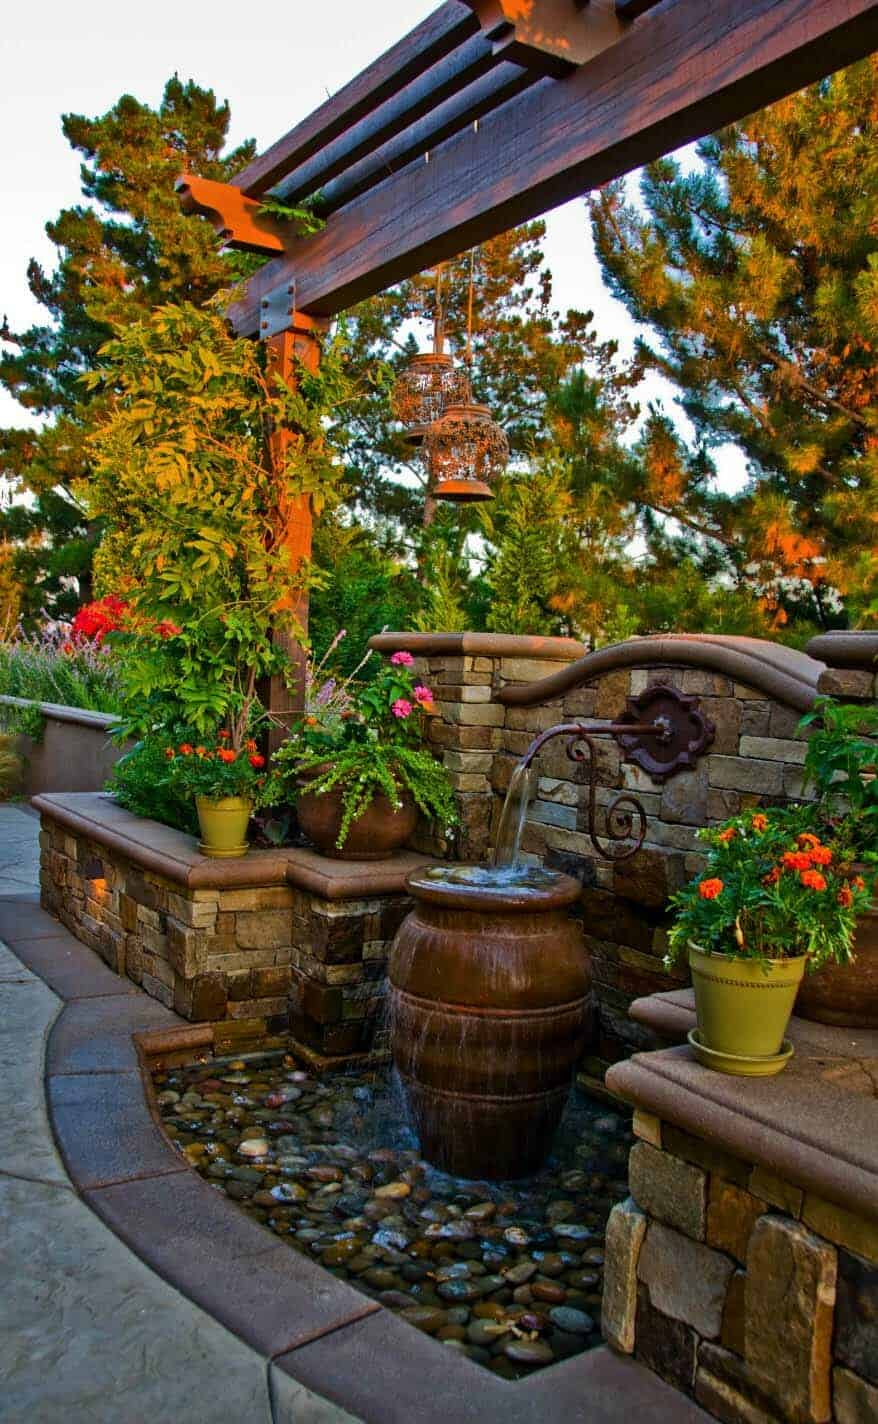 23 Inspiring outdoor garden fountains to add tranquility to ... on rustic gardening, garden fountains, beautiful backyard fountains, classic backyard fountains, tropical backyard fountains, modern backyard fountains, unique backyard fountains, elegant backyard fountains, large backyard fountains, wood backyard fountains, small backyard fountains, bird baths and fountains,